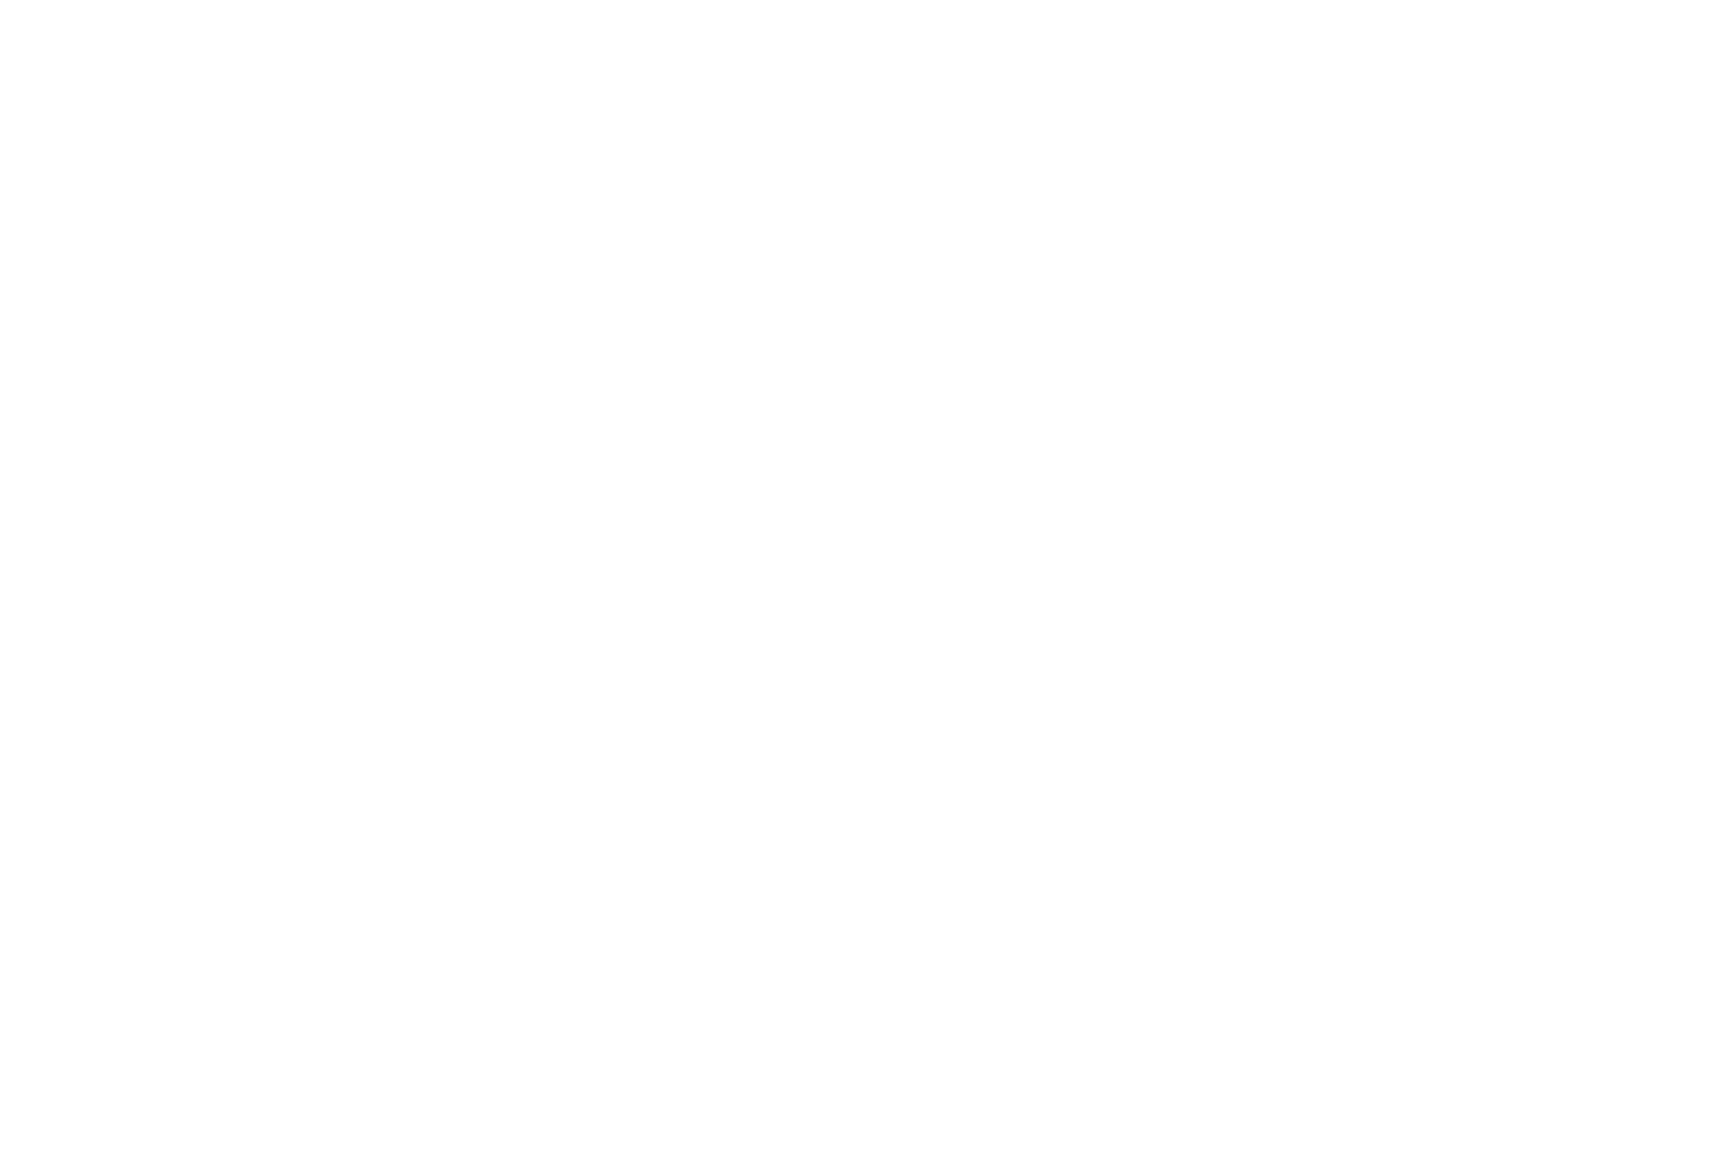 TOP 10 FINALIST - Waterfront Film Festival Screenplay Competition